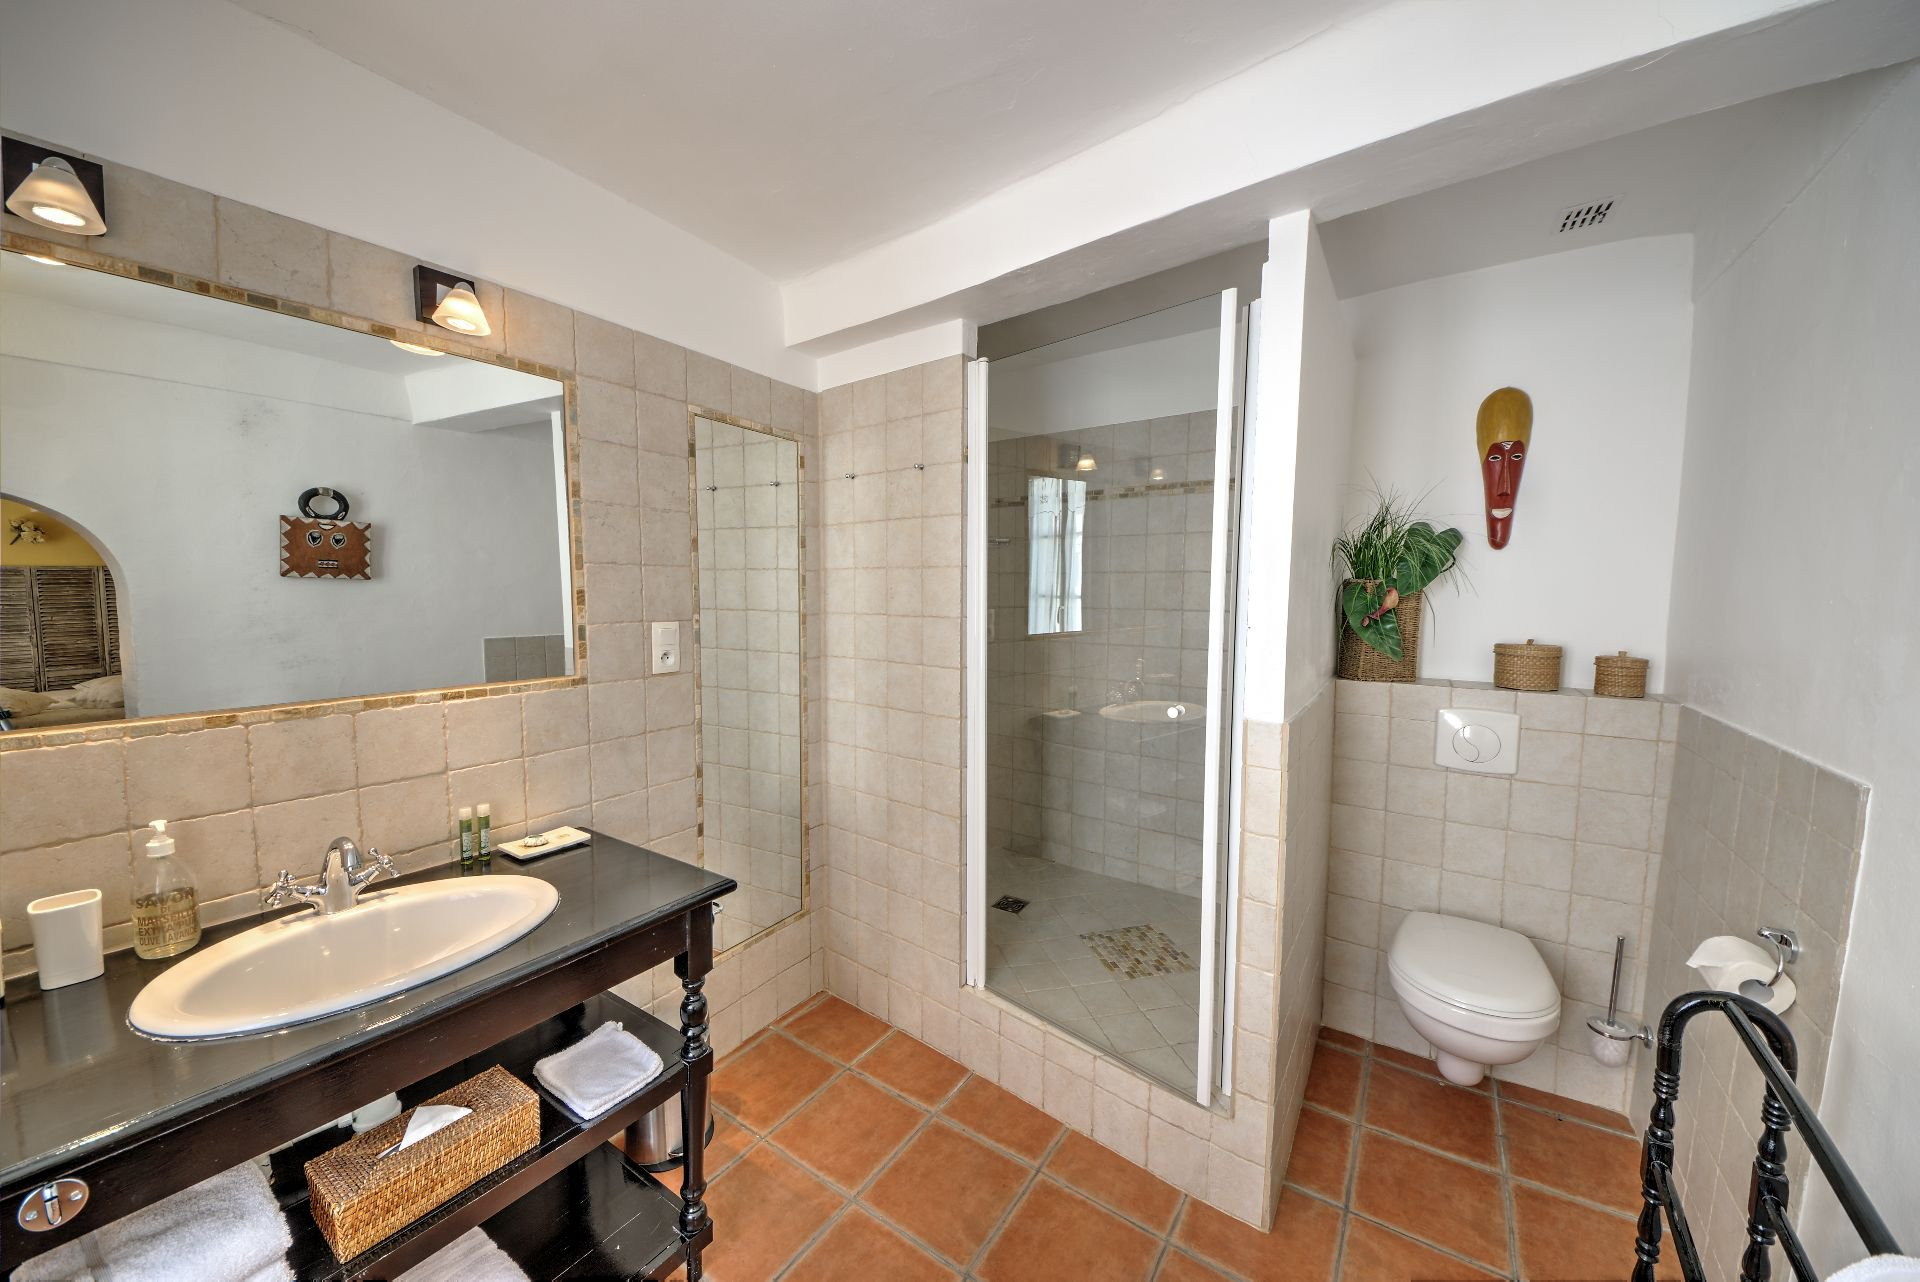 Bathroom Suite 4 of the guest house with garden and pool Rocbaron, Var, Provence